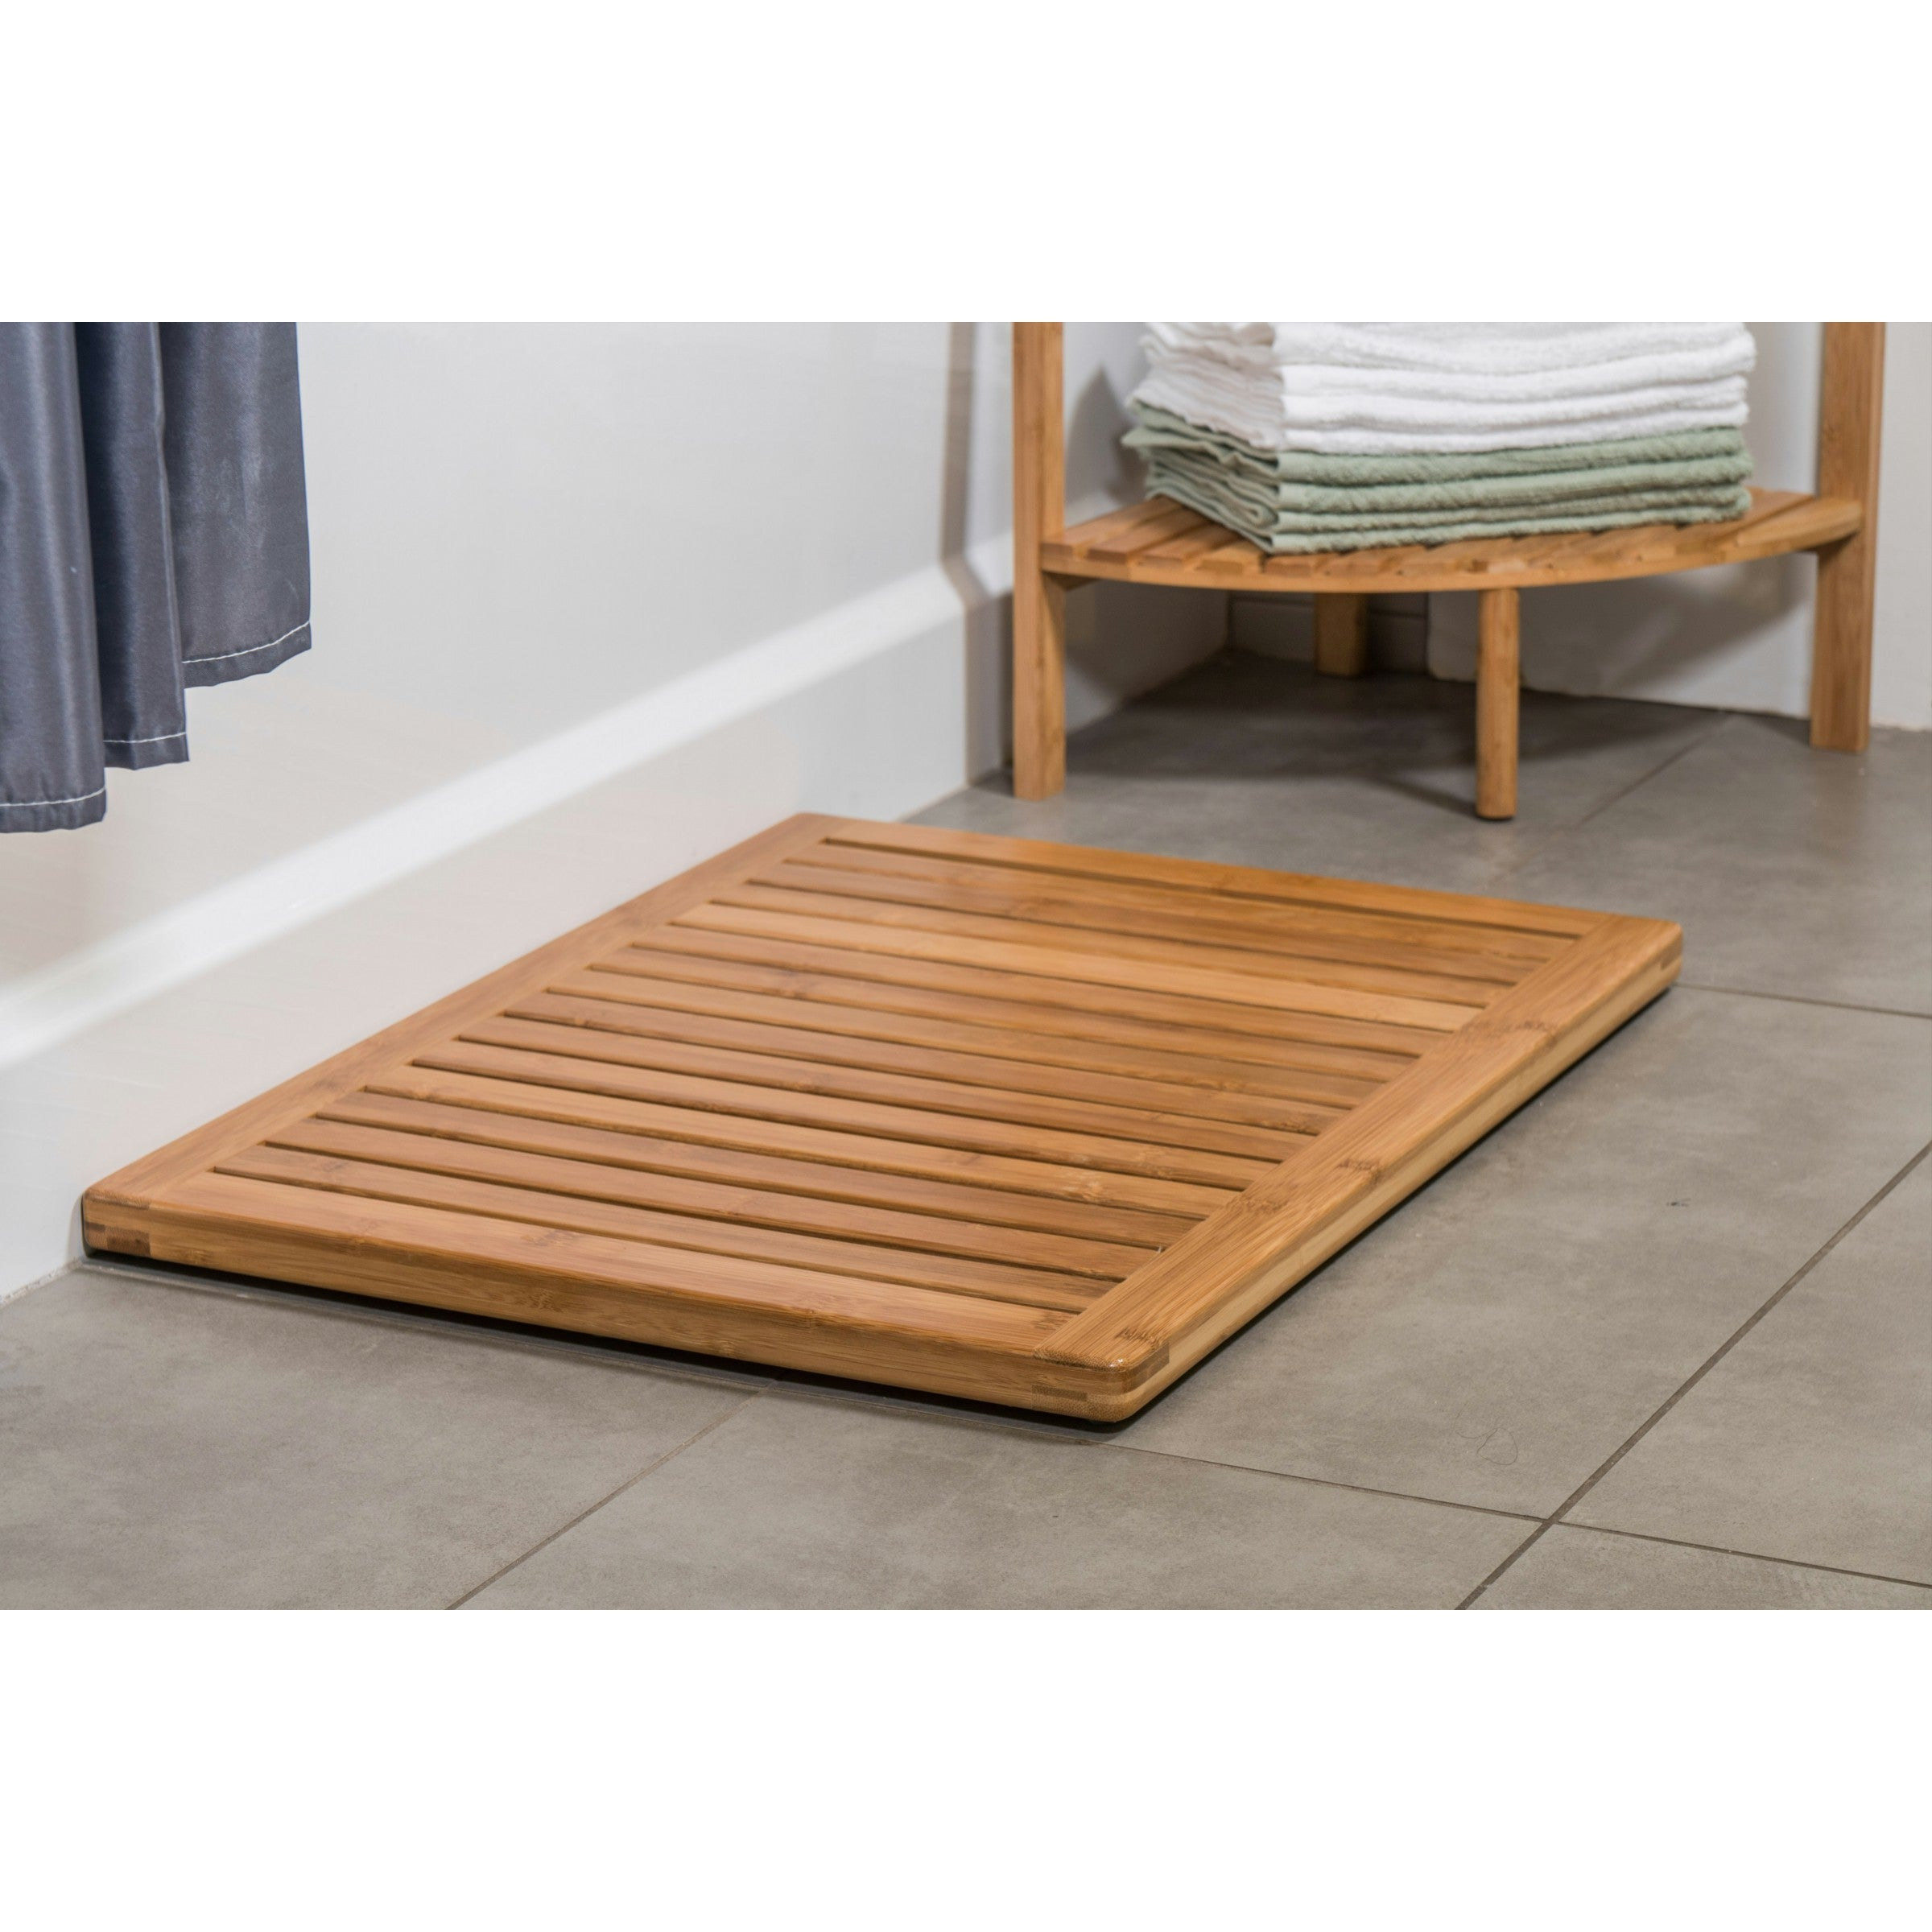 Ordinaire Shop 18x24 Inch Bamboo Bath Mat   On Sale   Free Shipping Today    Overstock.com   16586669